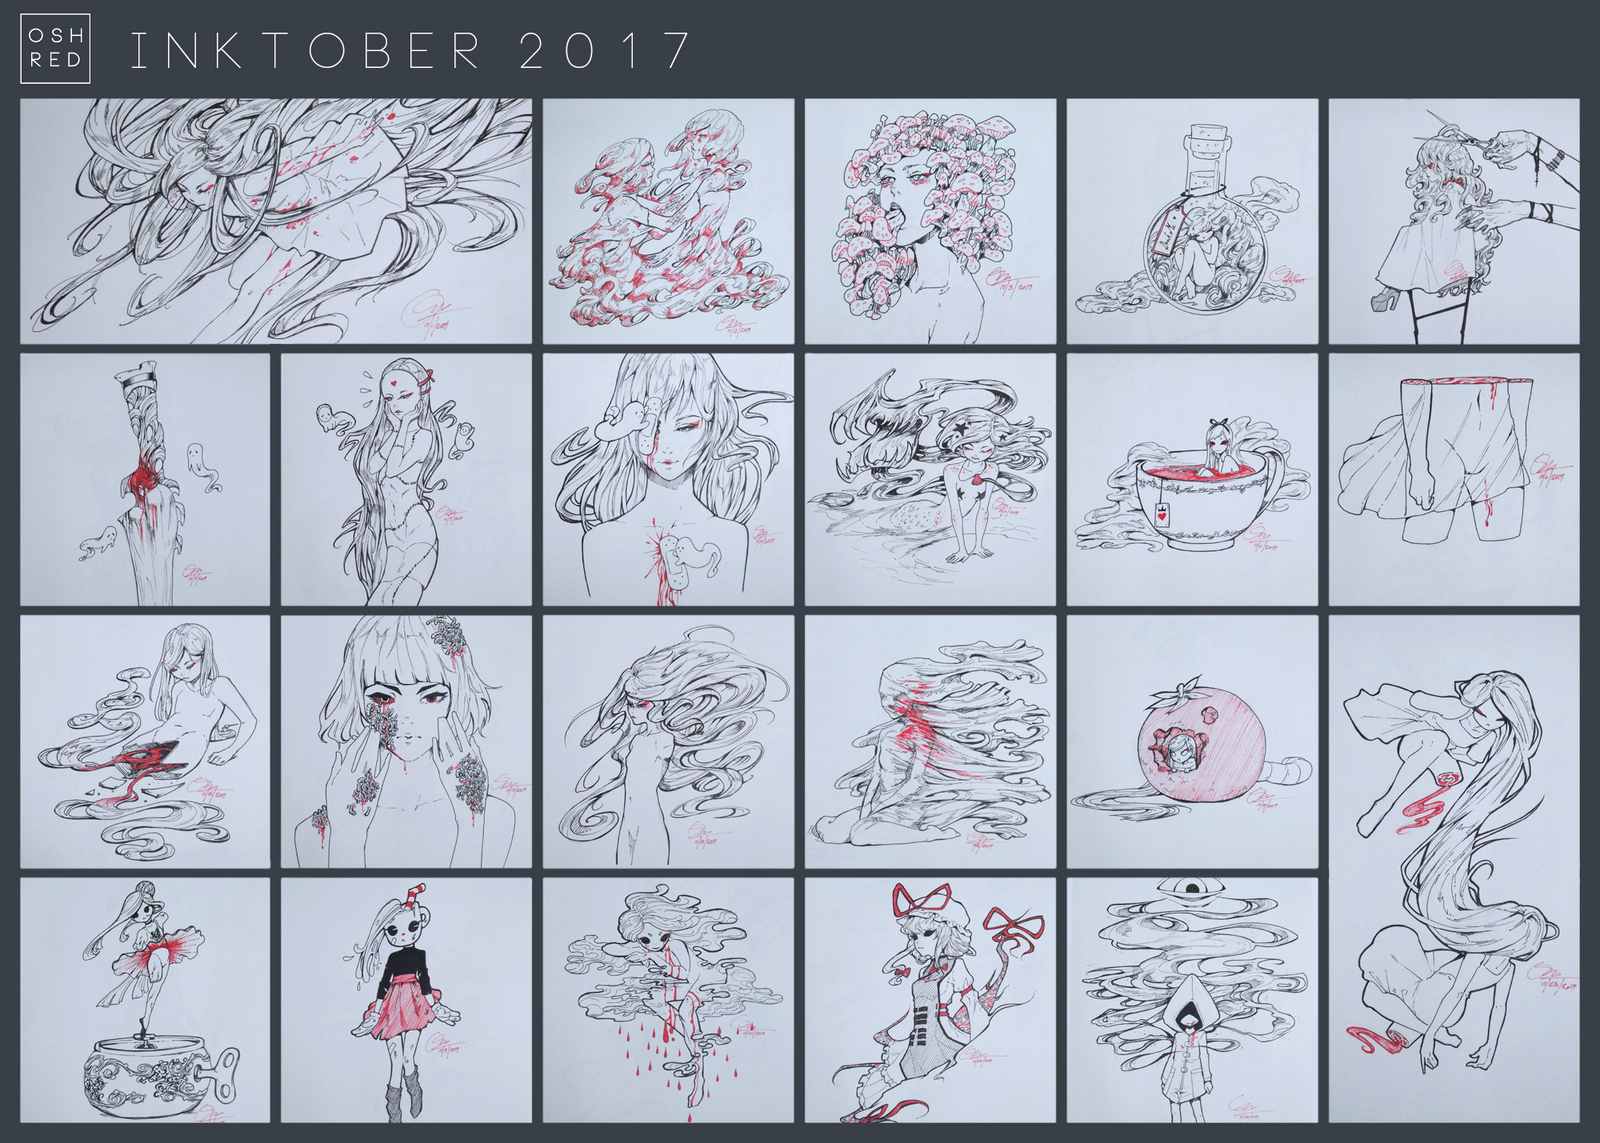 Inktober 2017 by oshred on deviantart for Craft fairs near me november 2017